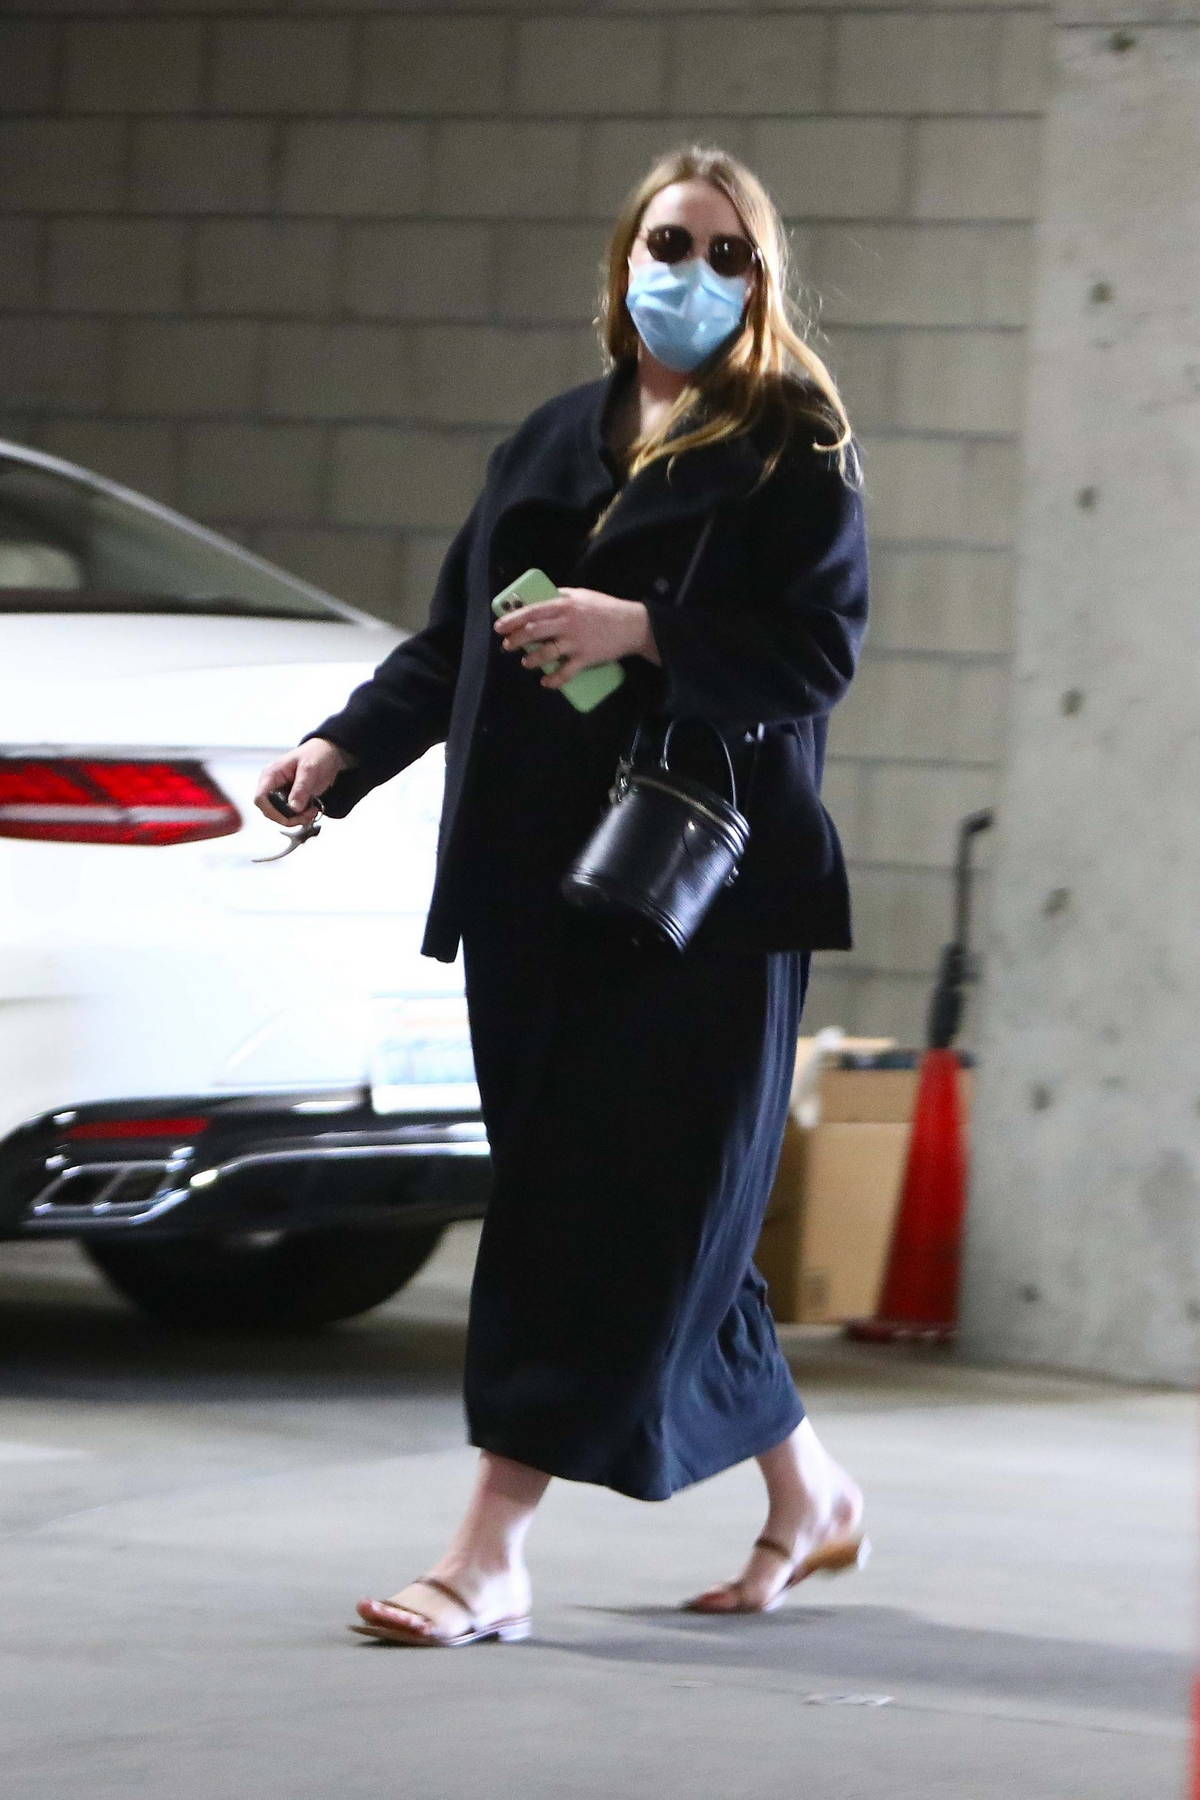 Emma Stone returns to the parking garage valet for her car after running errands in Santa Monica, California